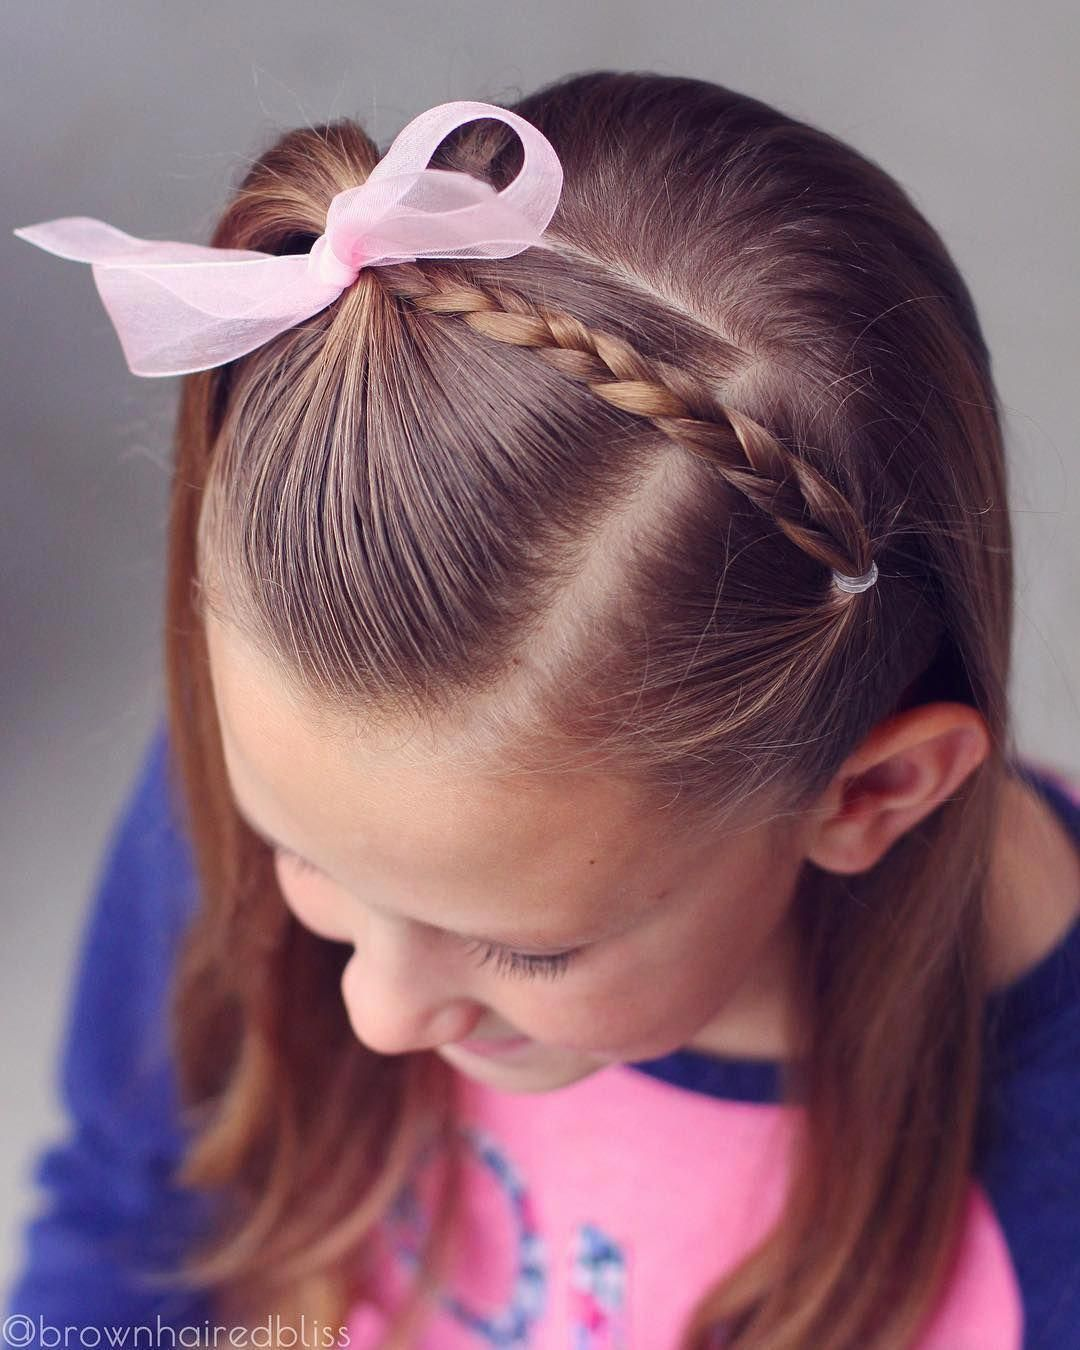 Ladies Short Hairstyles 2016 Show Me Short Haircuts For Women Cute Quick Little Girl Hairstyles 201903 Little Girl Hairstyles Girl Hair Dos Kids Hairstyles